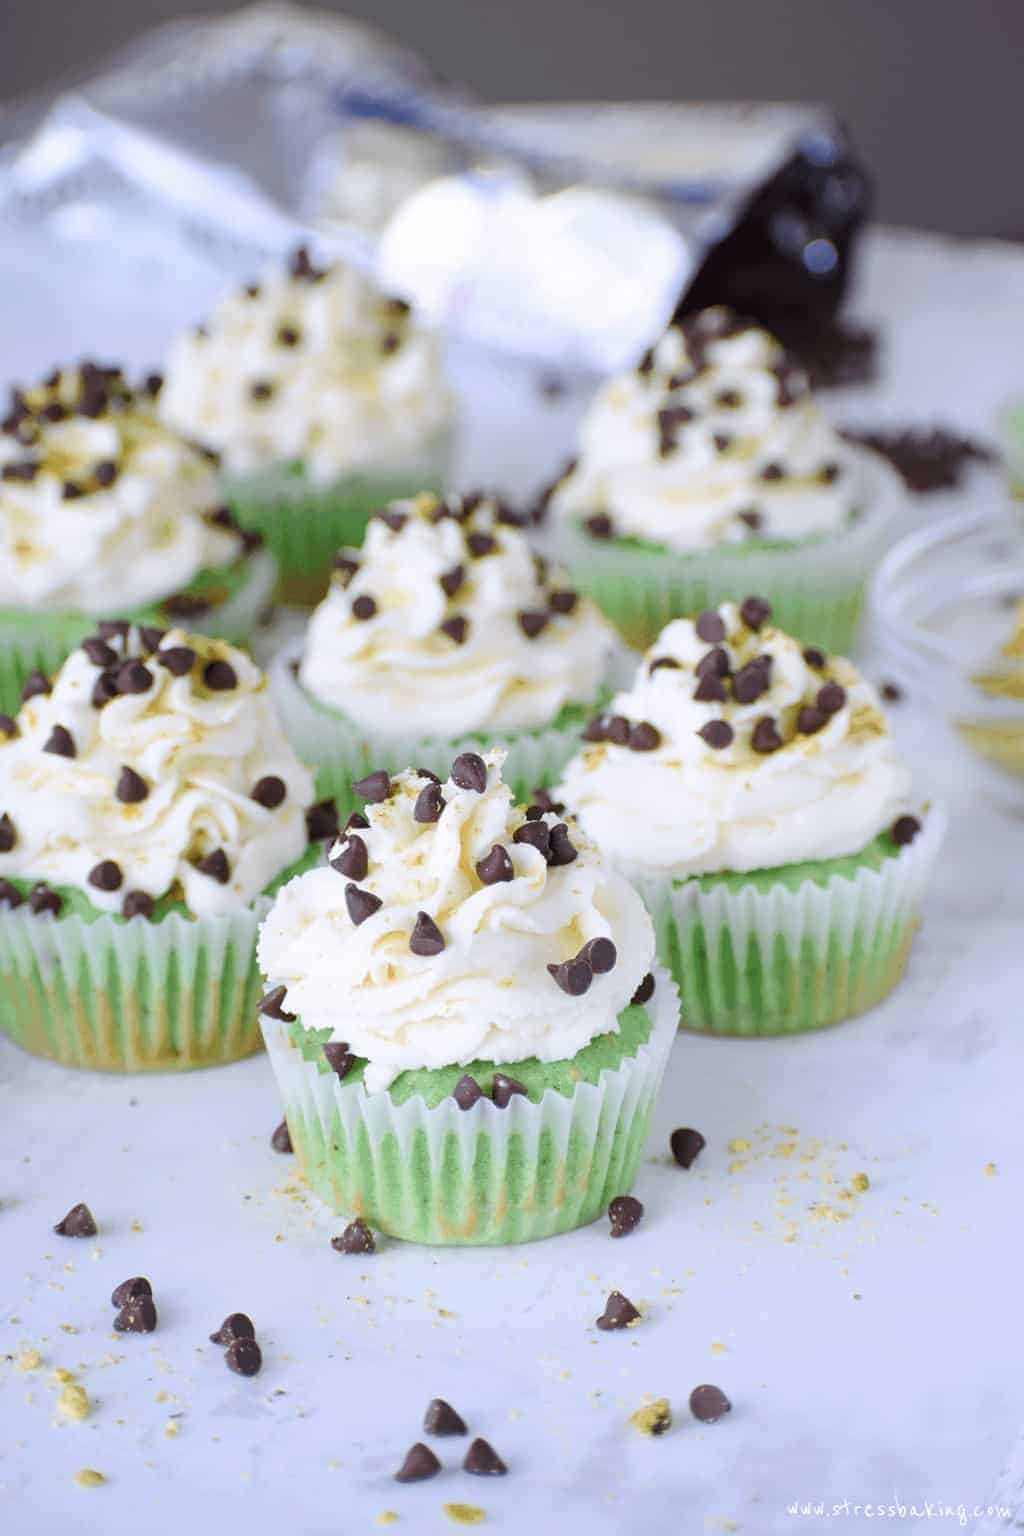 Pistachio cupcakes with cannoli frosting